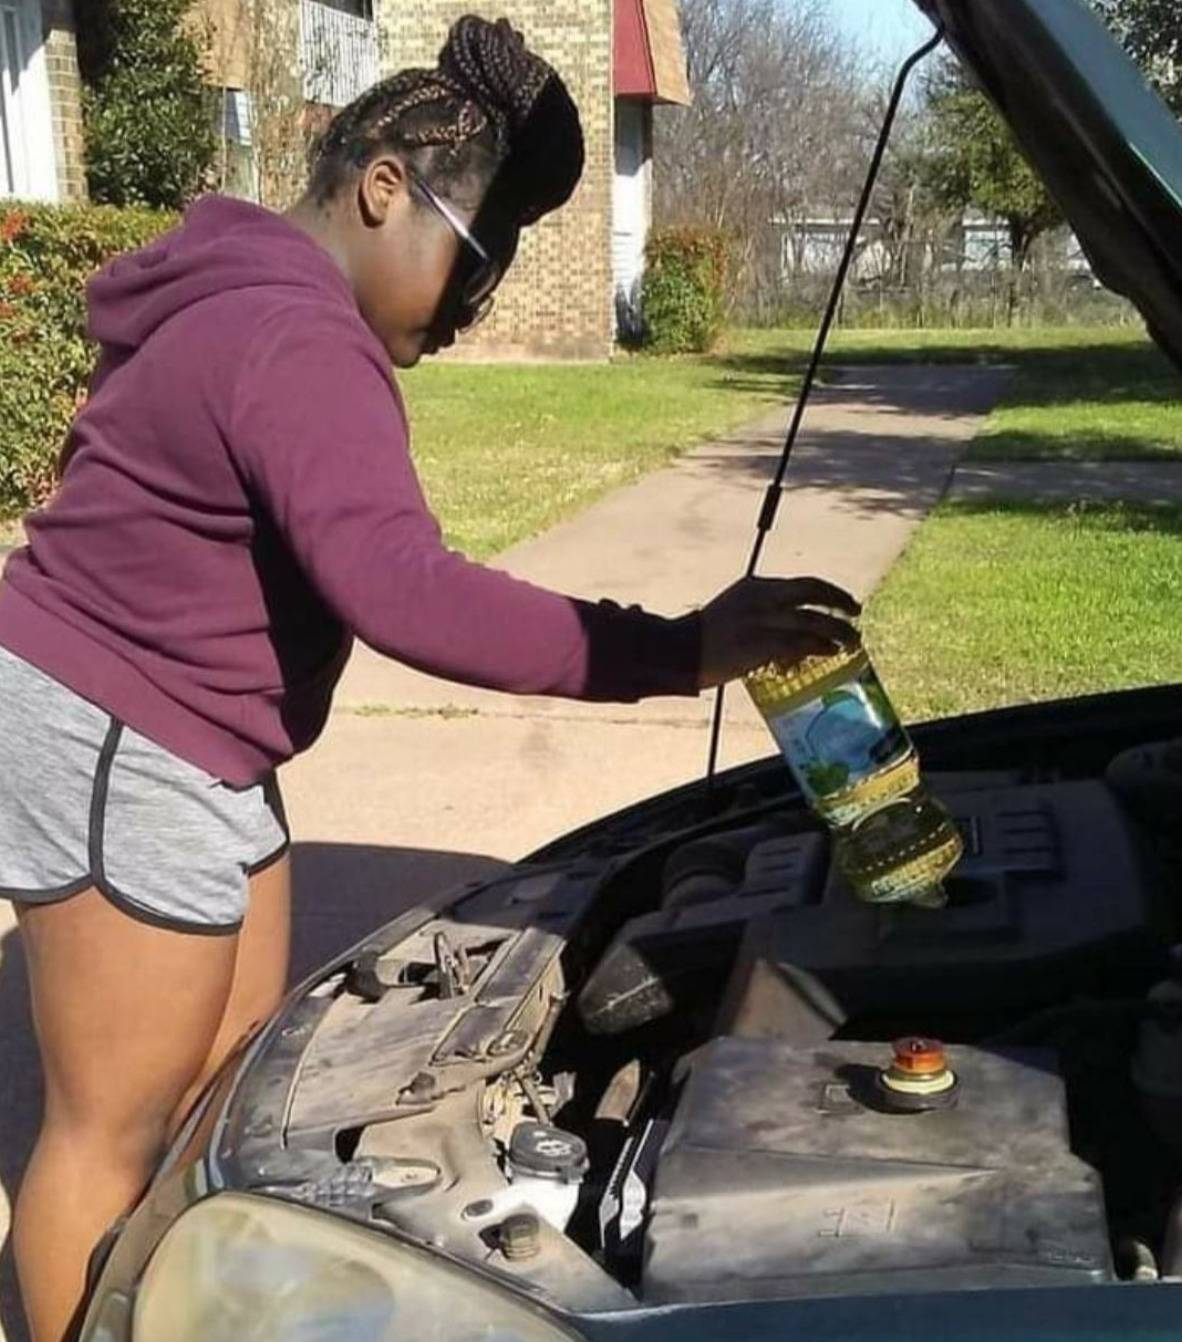 woman replacing the oil in her car with vegetable oil